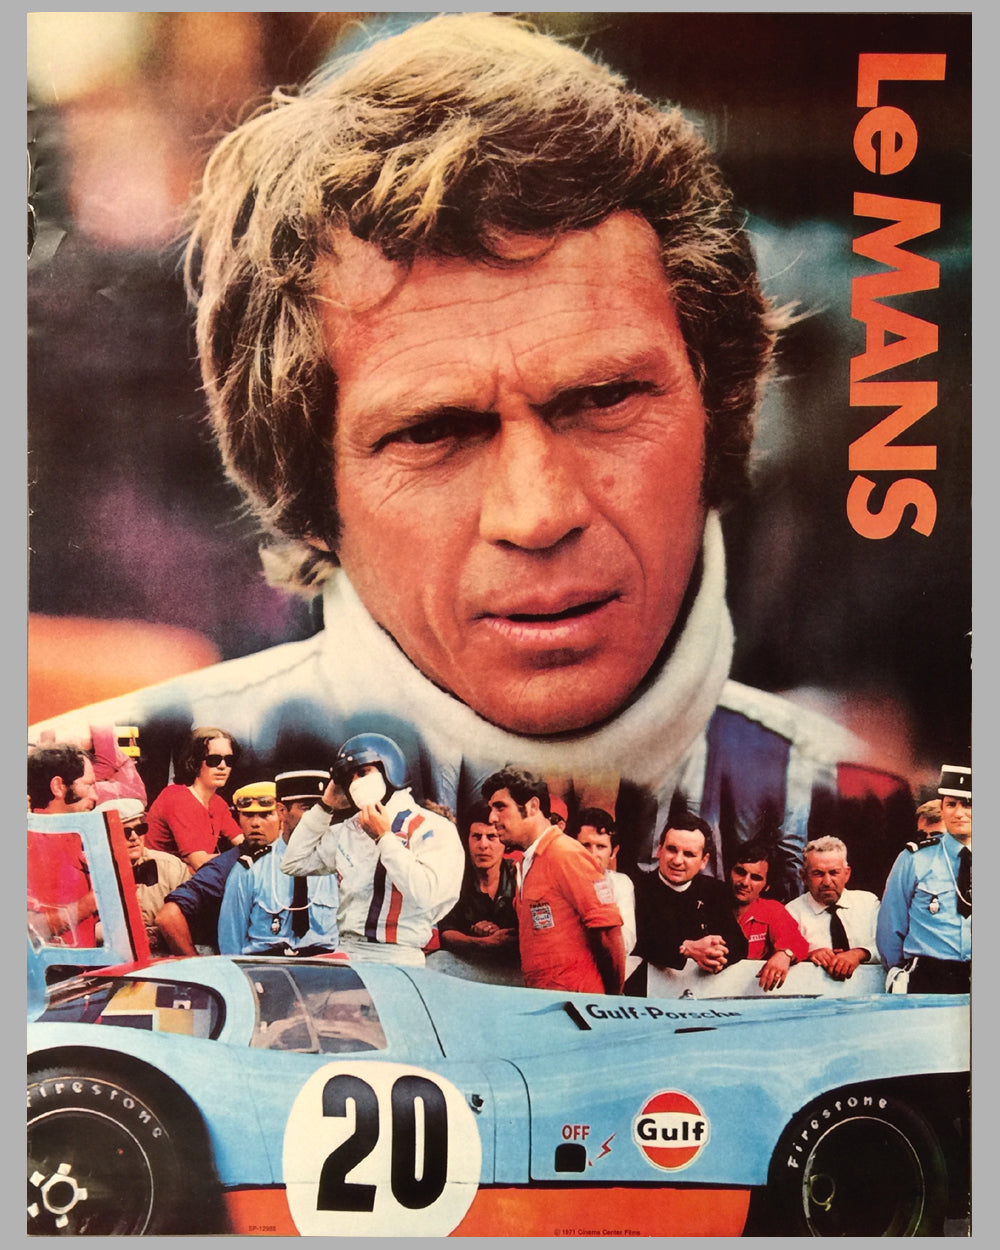 1971 Steve McQueen Le Mans original advertising poster